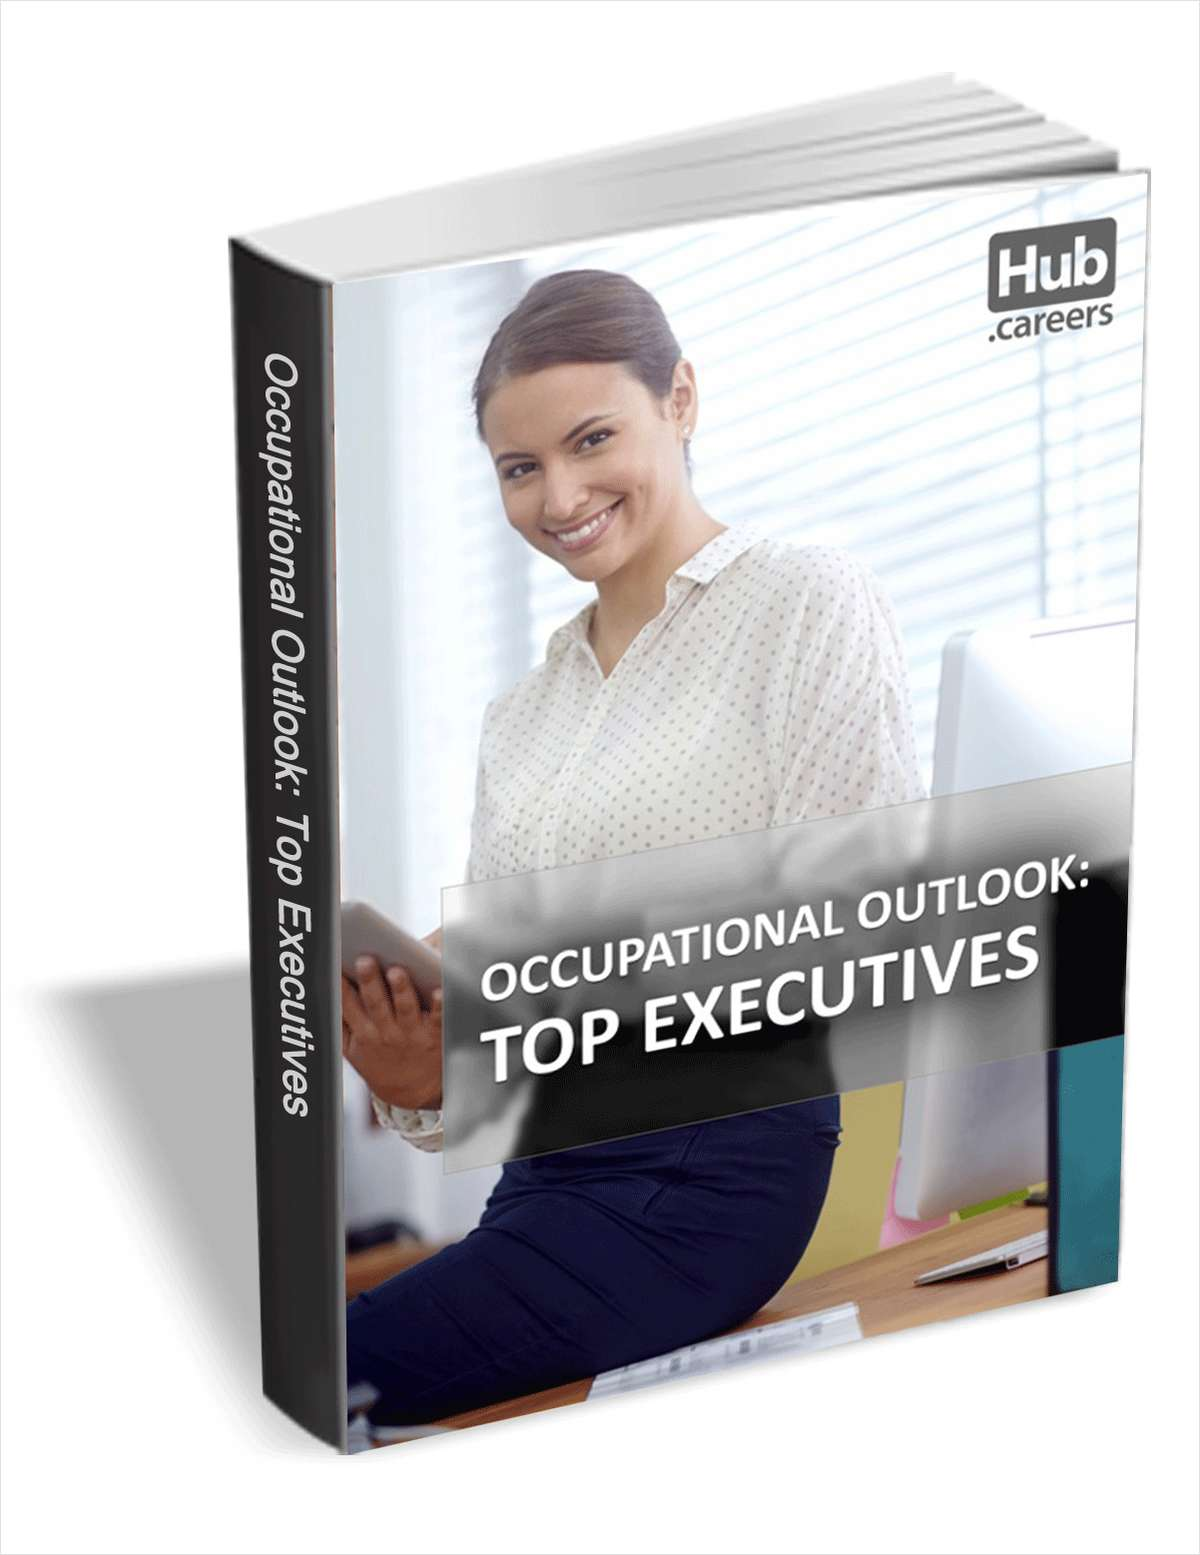 Top Executives - Occupational Outlook